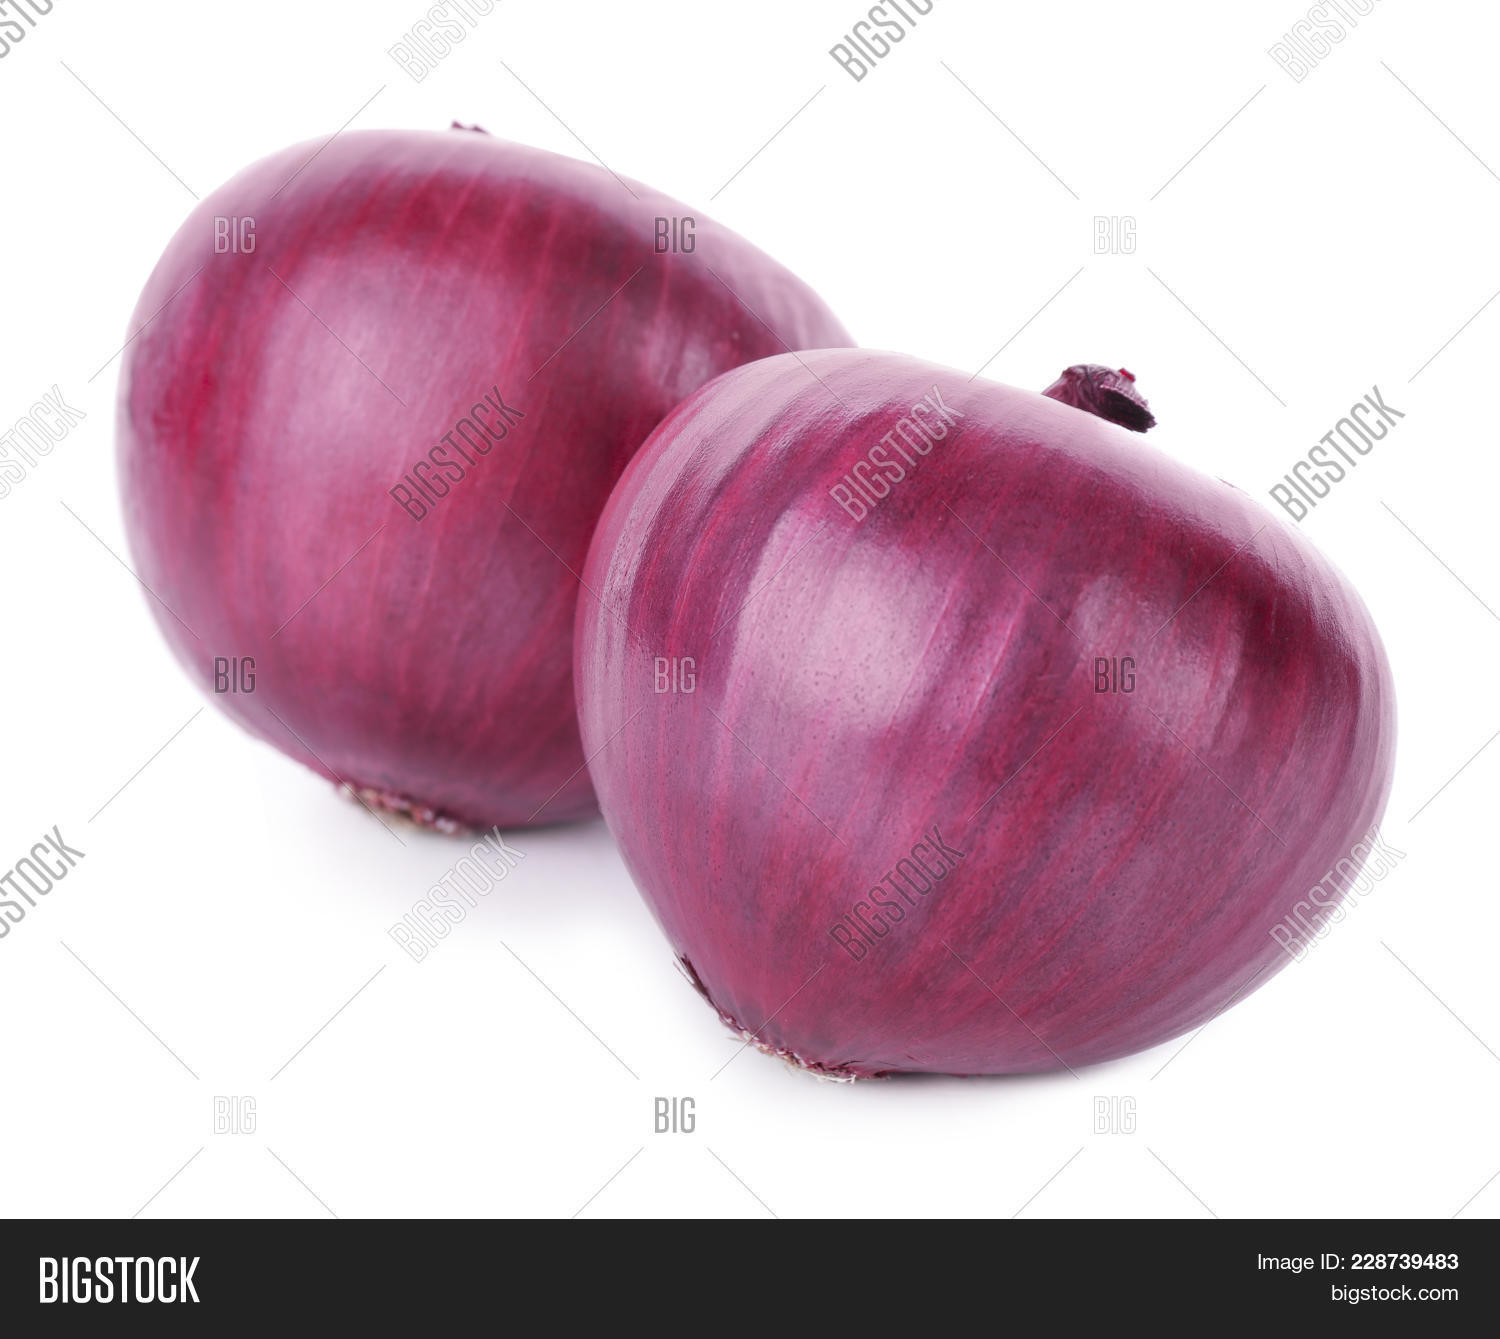 Autumn White Red Onion Powerpoint Template Autumn White Red Onion